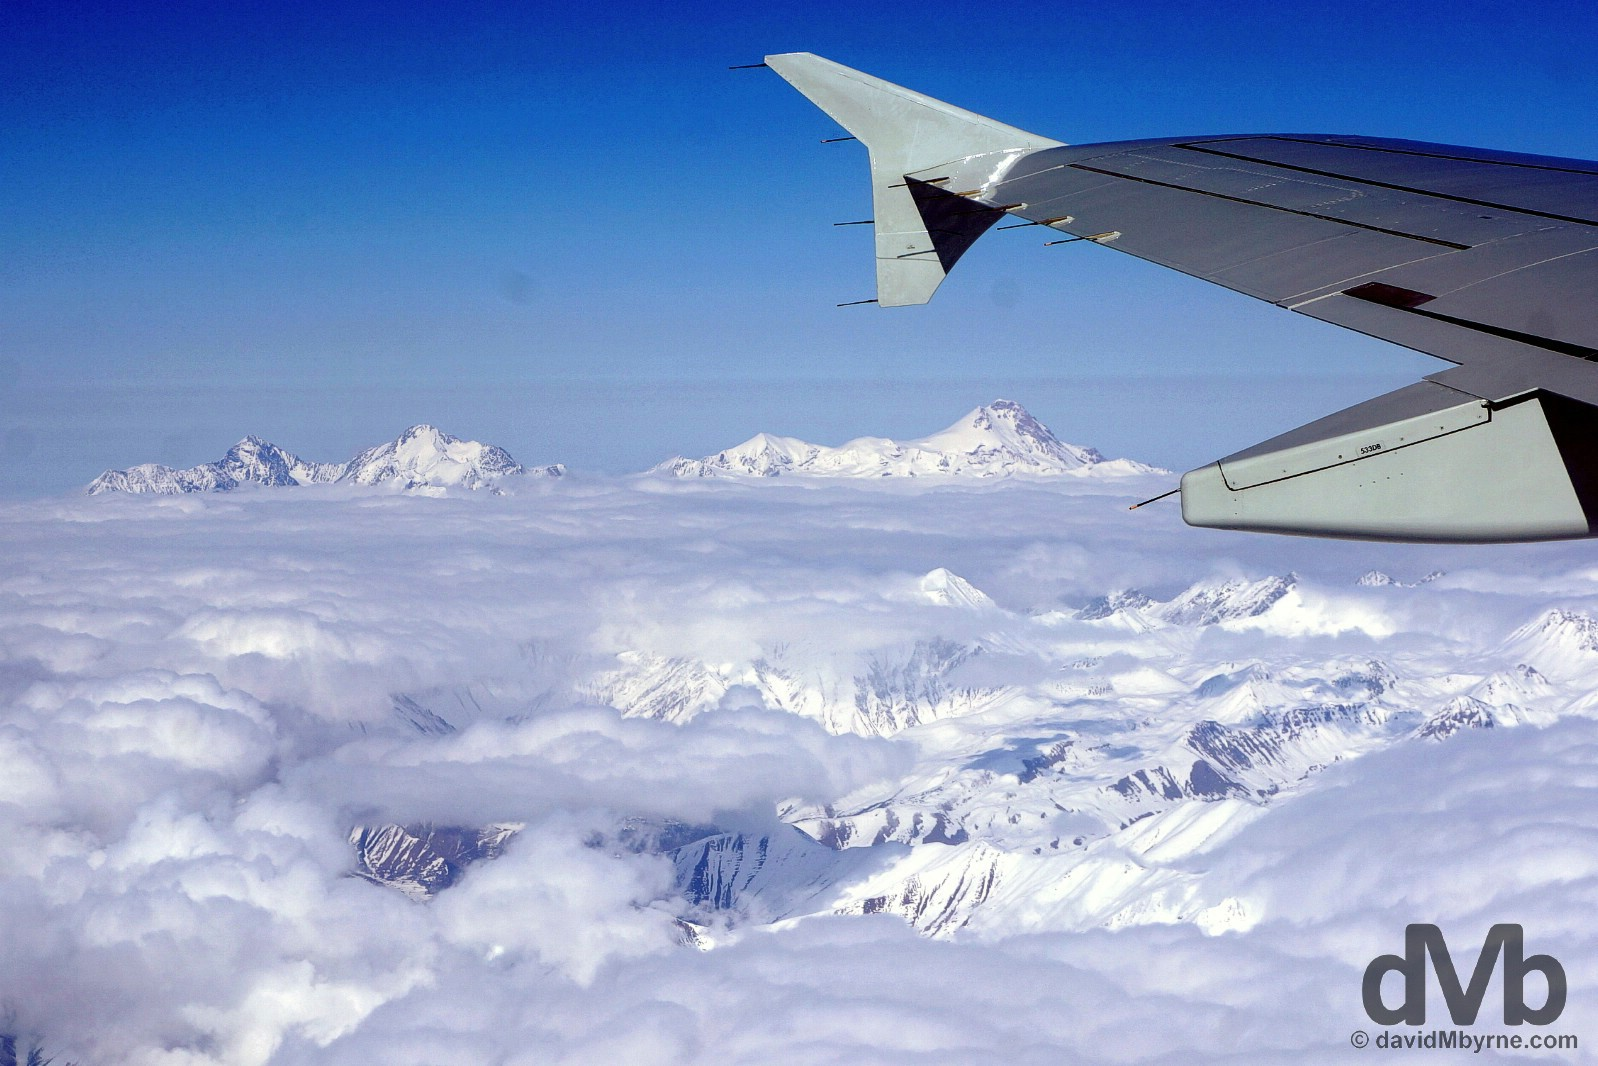 Caucasus Mountain scenery as seen from Siberia S7 Airlines flight 955 en route from Moscow, Russia, to Tbilisi, Georgia. March 18, 2015.